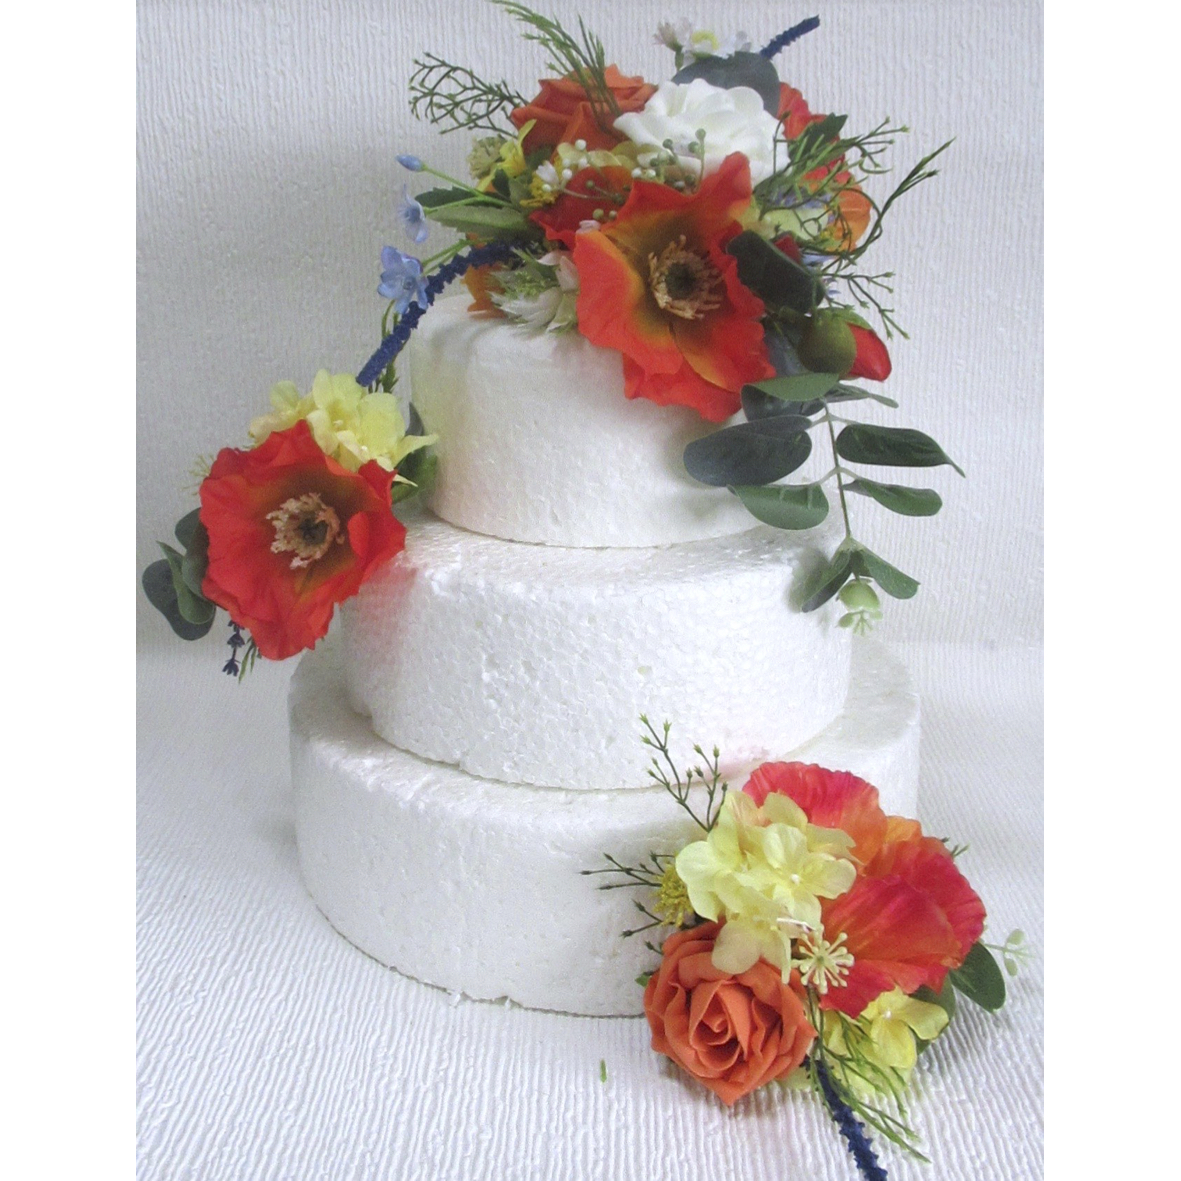 Wild flower cake topper and side sprays -